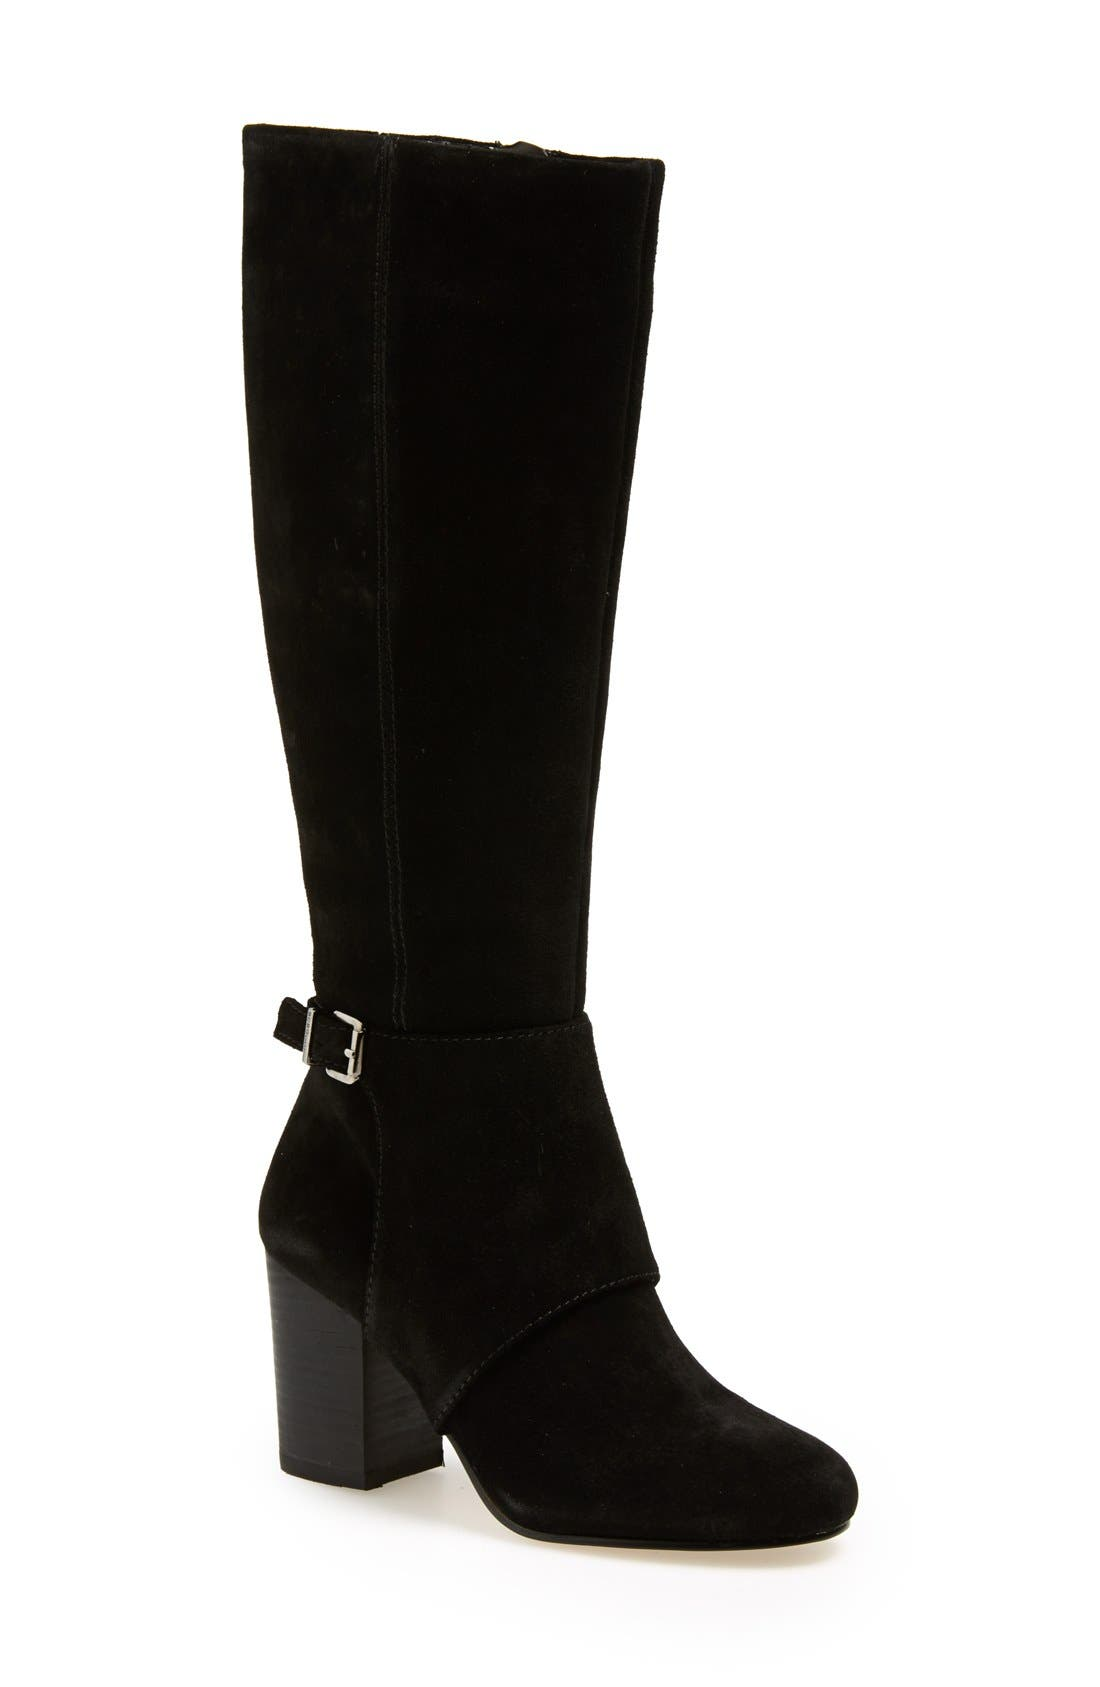 Alternate Image 1 Selected - BCBGeneration 'Denver' Knee High Boot (Women)